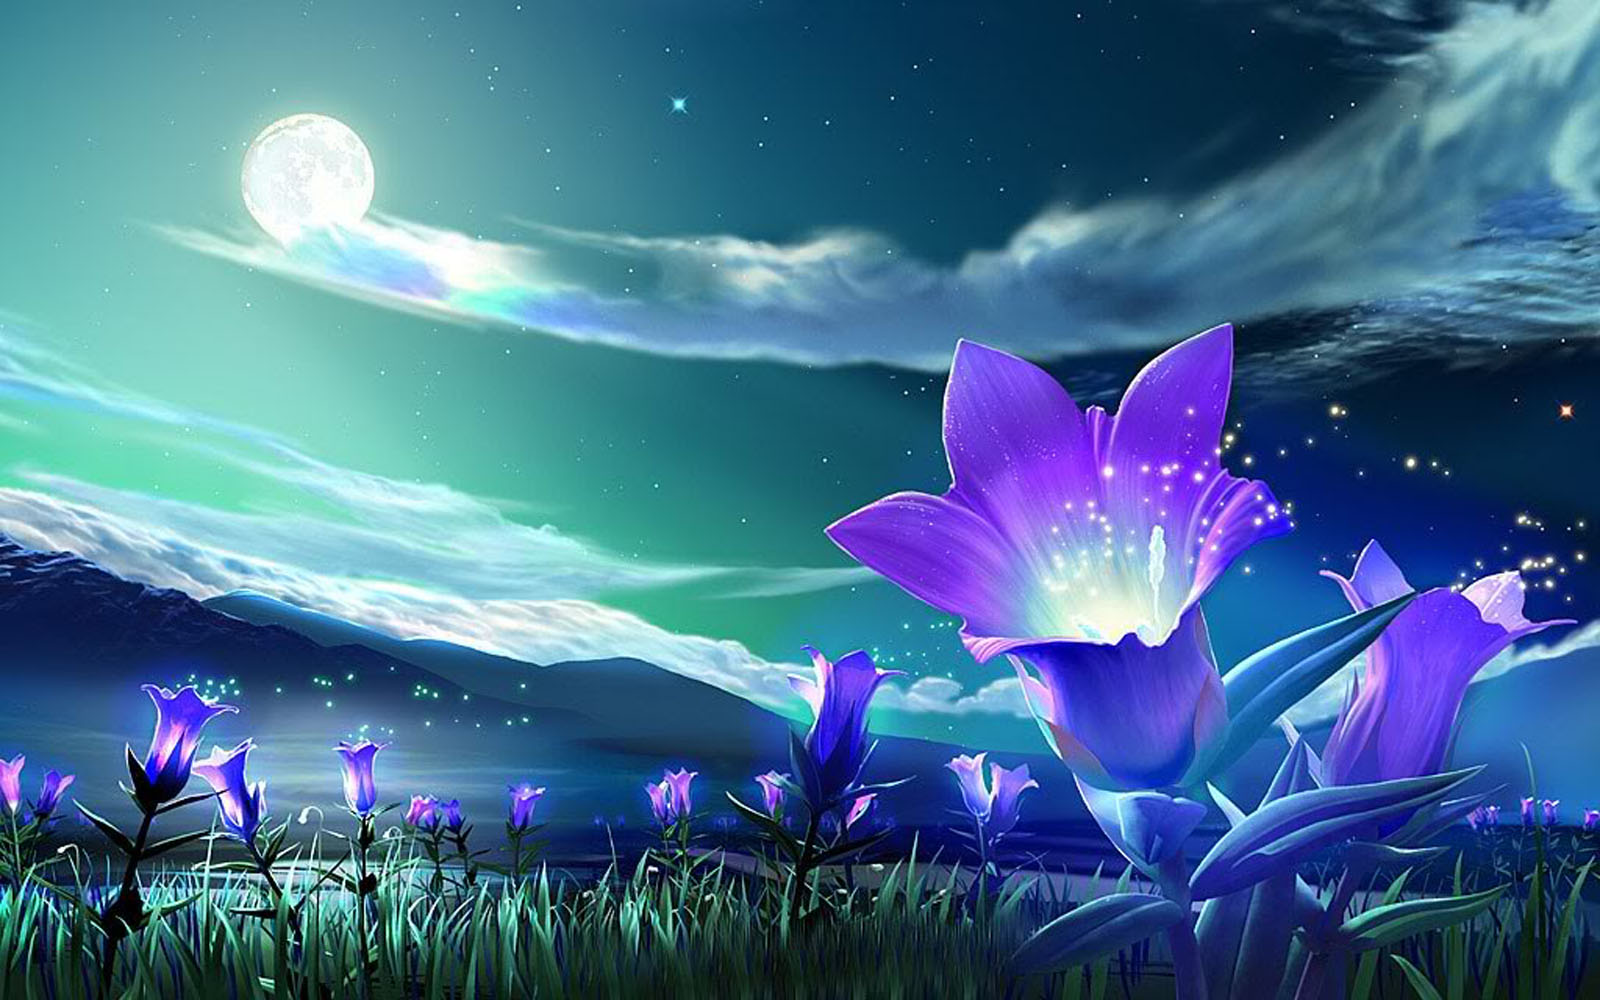 Tag: Windows 7 Flowers Wallpapers, Backgrounds, Photos,Images and ...